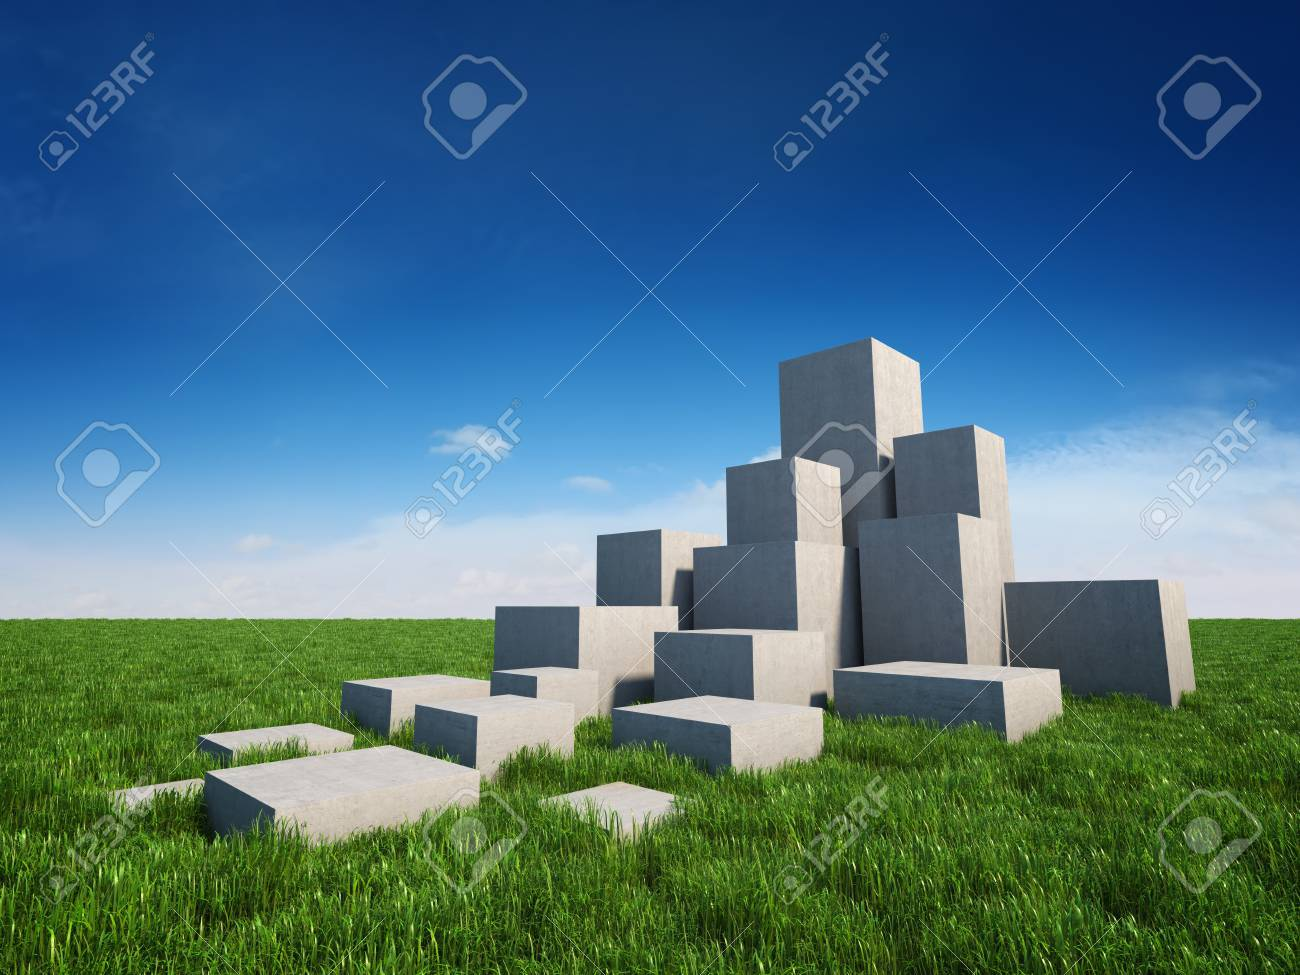 Abstract stairs of concrete cubes on field with grass and sky Stock Photo - 19867128